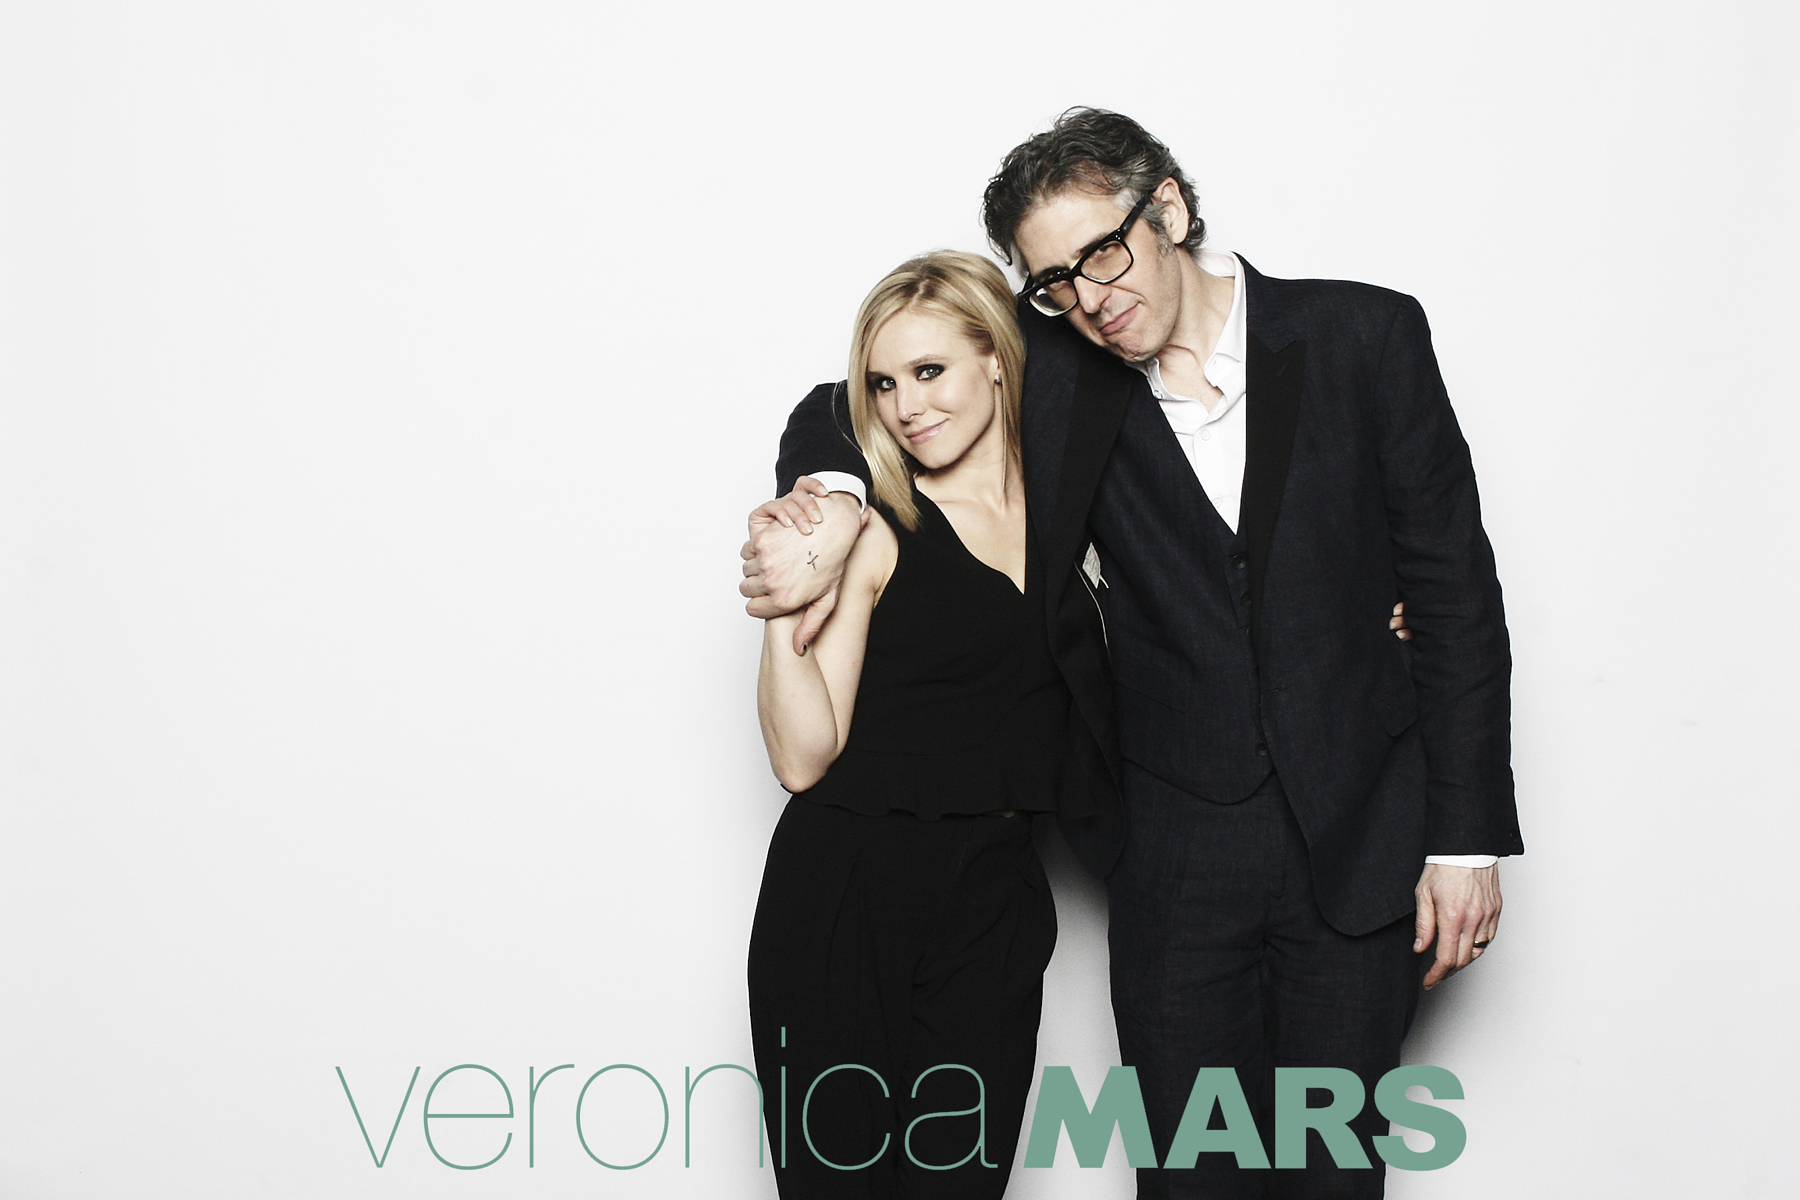 Veronica Mars Movie Premiere featuring Kristen Bell and Ira Glass